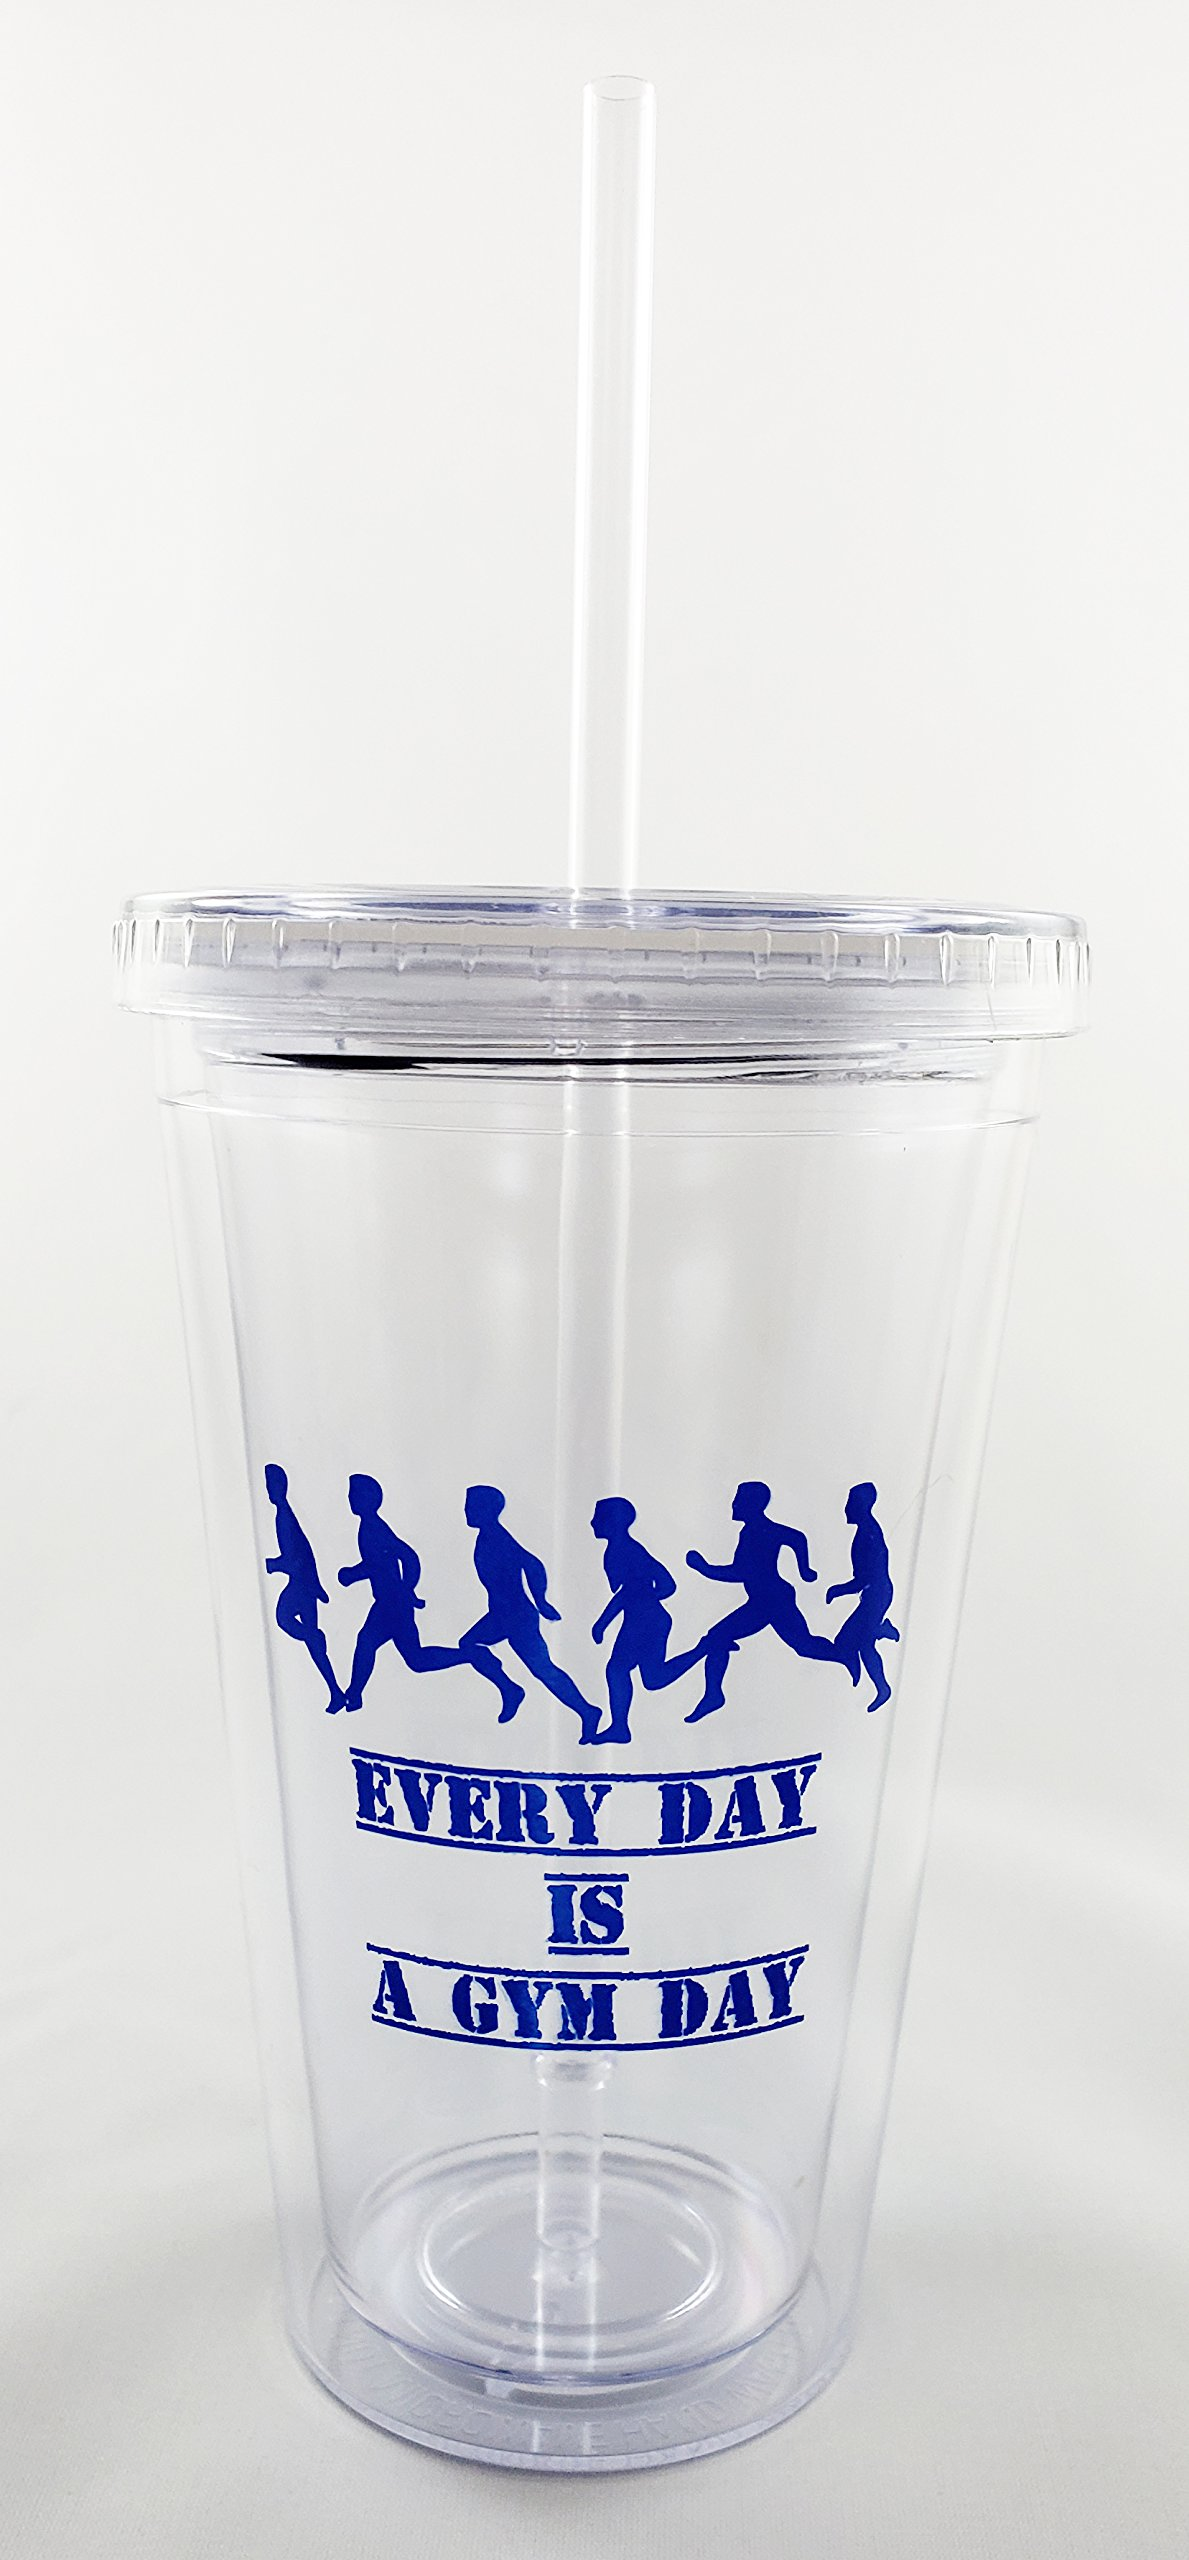 16 OZ TUMBLER PLASTIC DOUBLE WALL BPA FREE EVERY DAY IS A GYM DAY MOTIVATIONAL